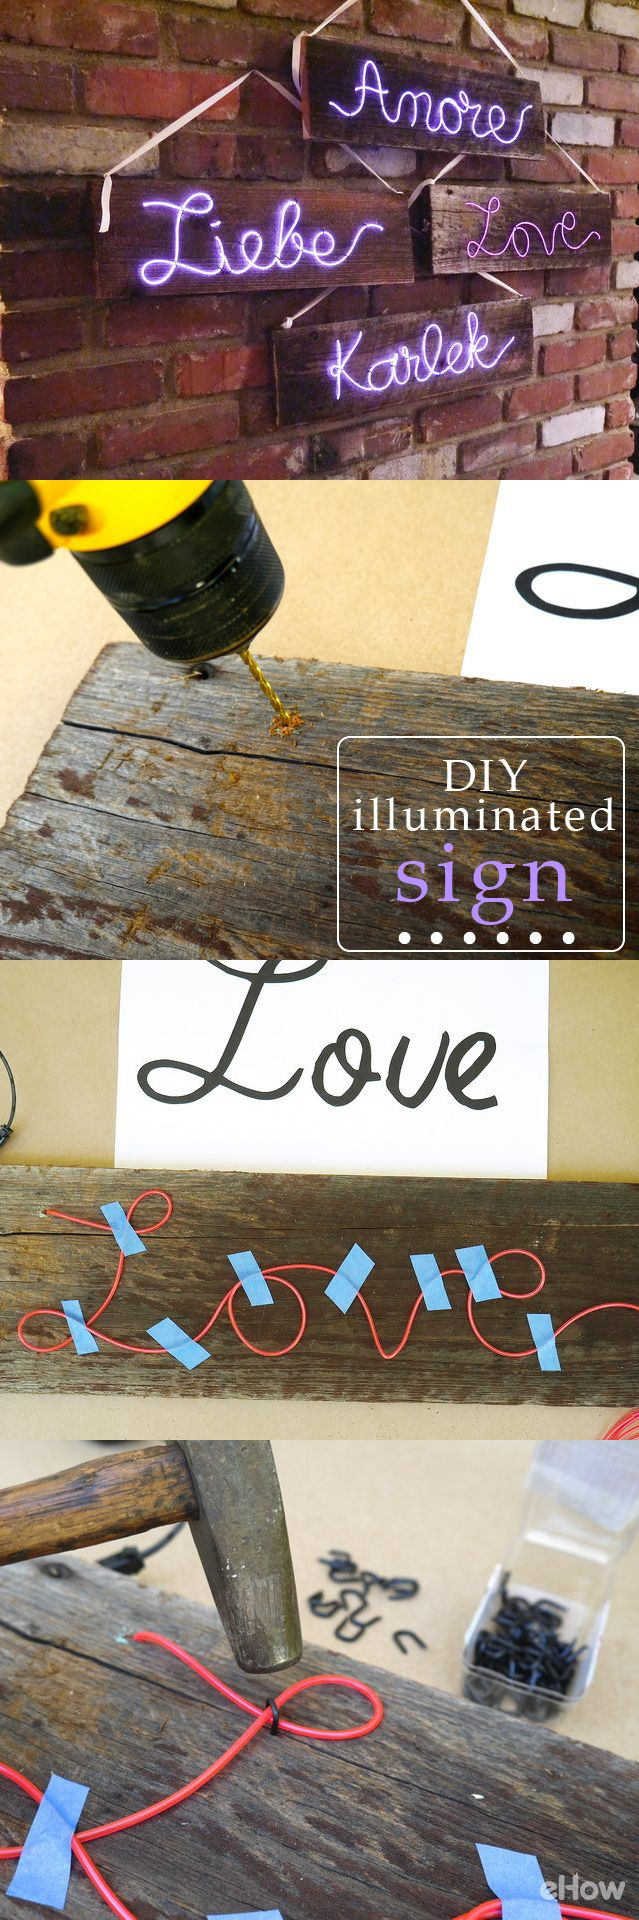 How to Make Your Own Illuminated Sign Diy neon sign, Diy